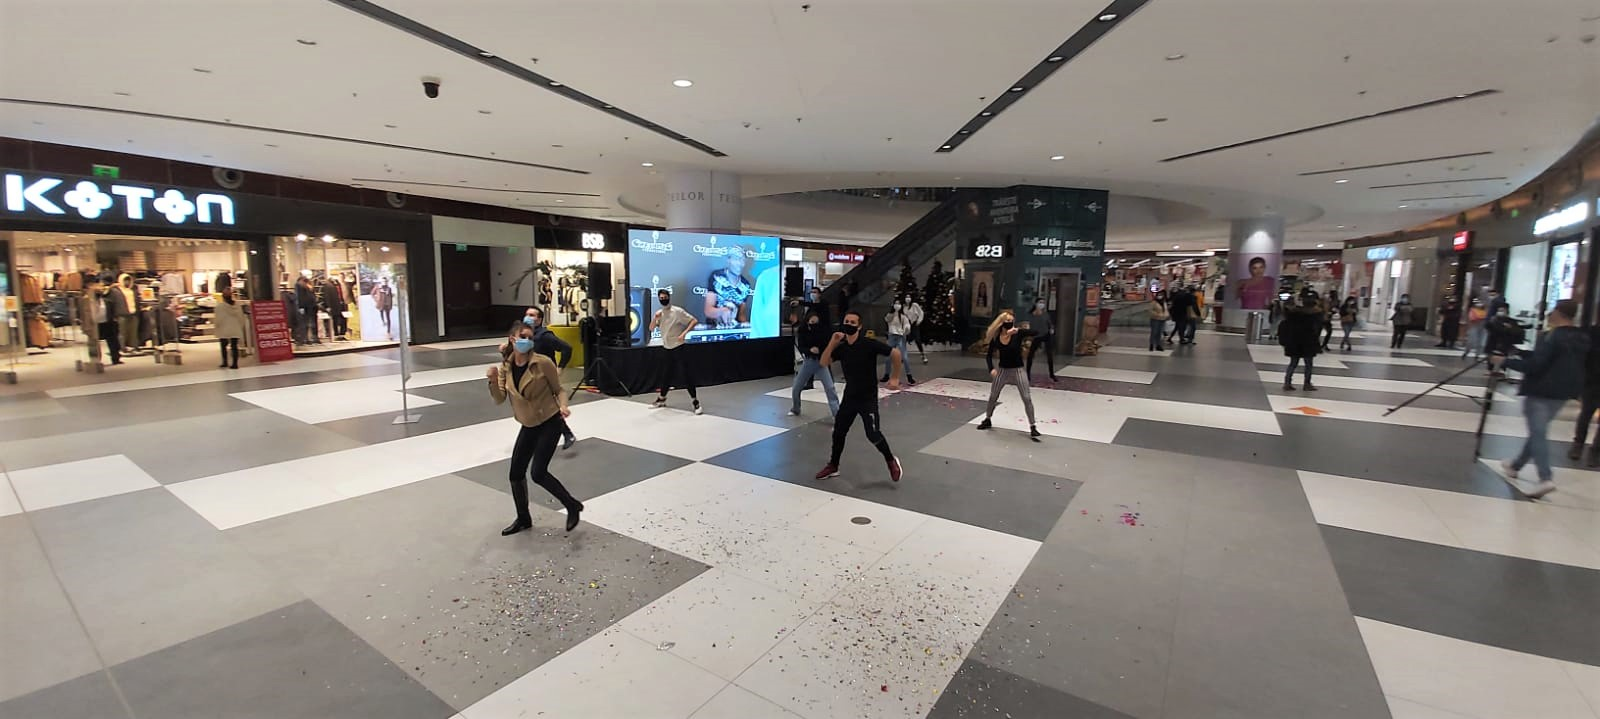 FlashMob Mall Sun Plaza 2020 2